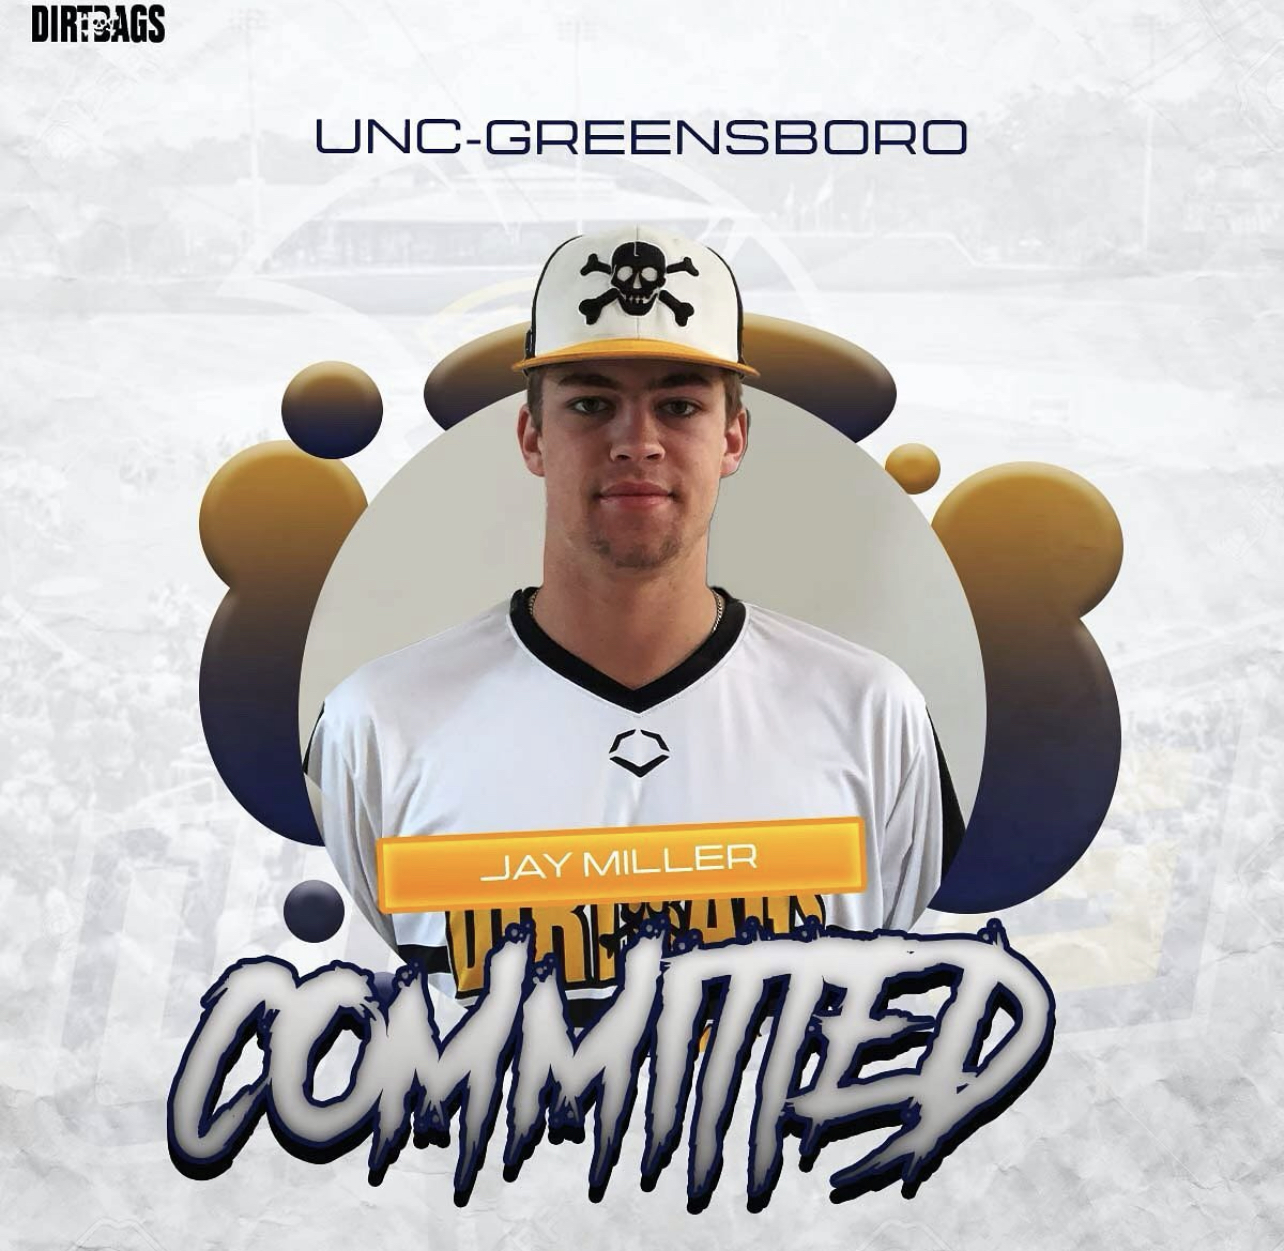 Jay Miller commits to UNC-Greensboro